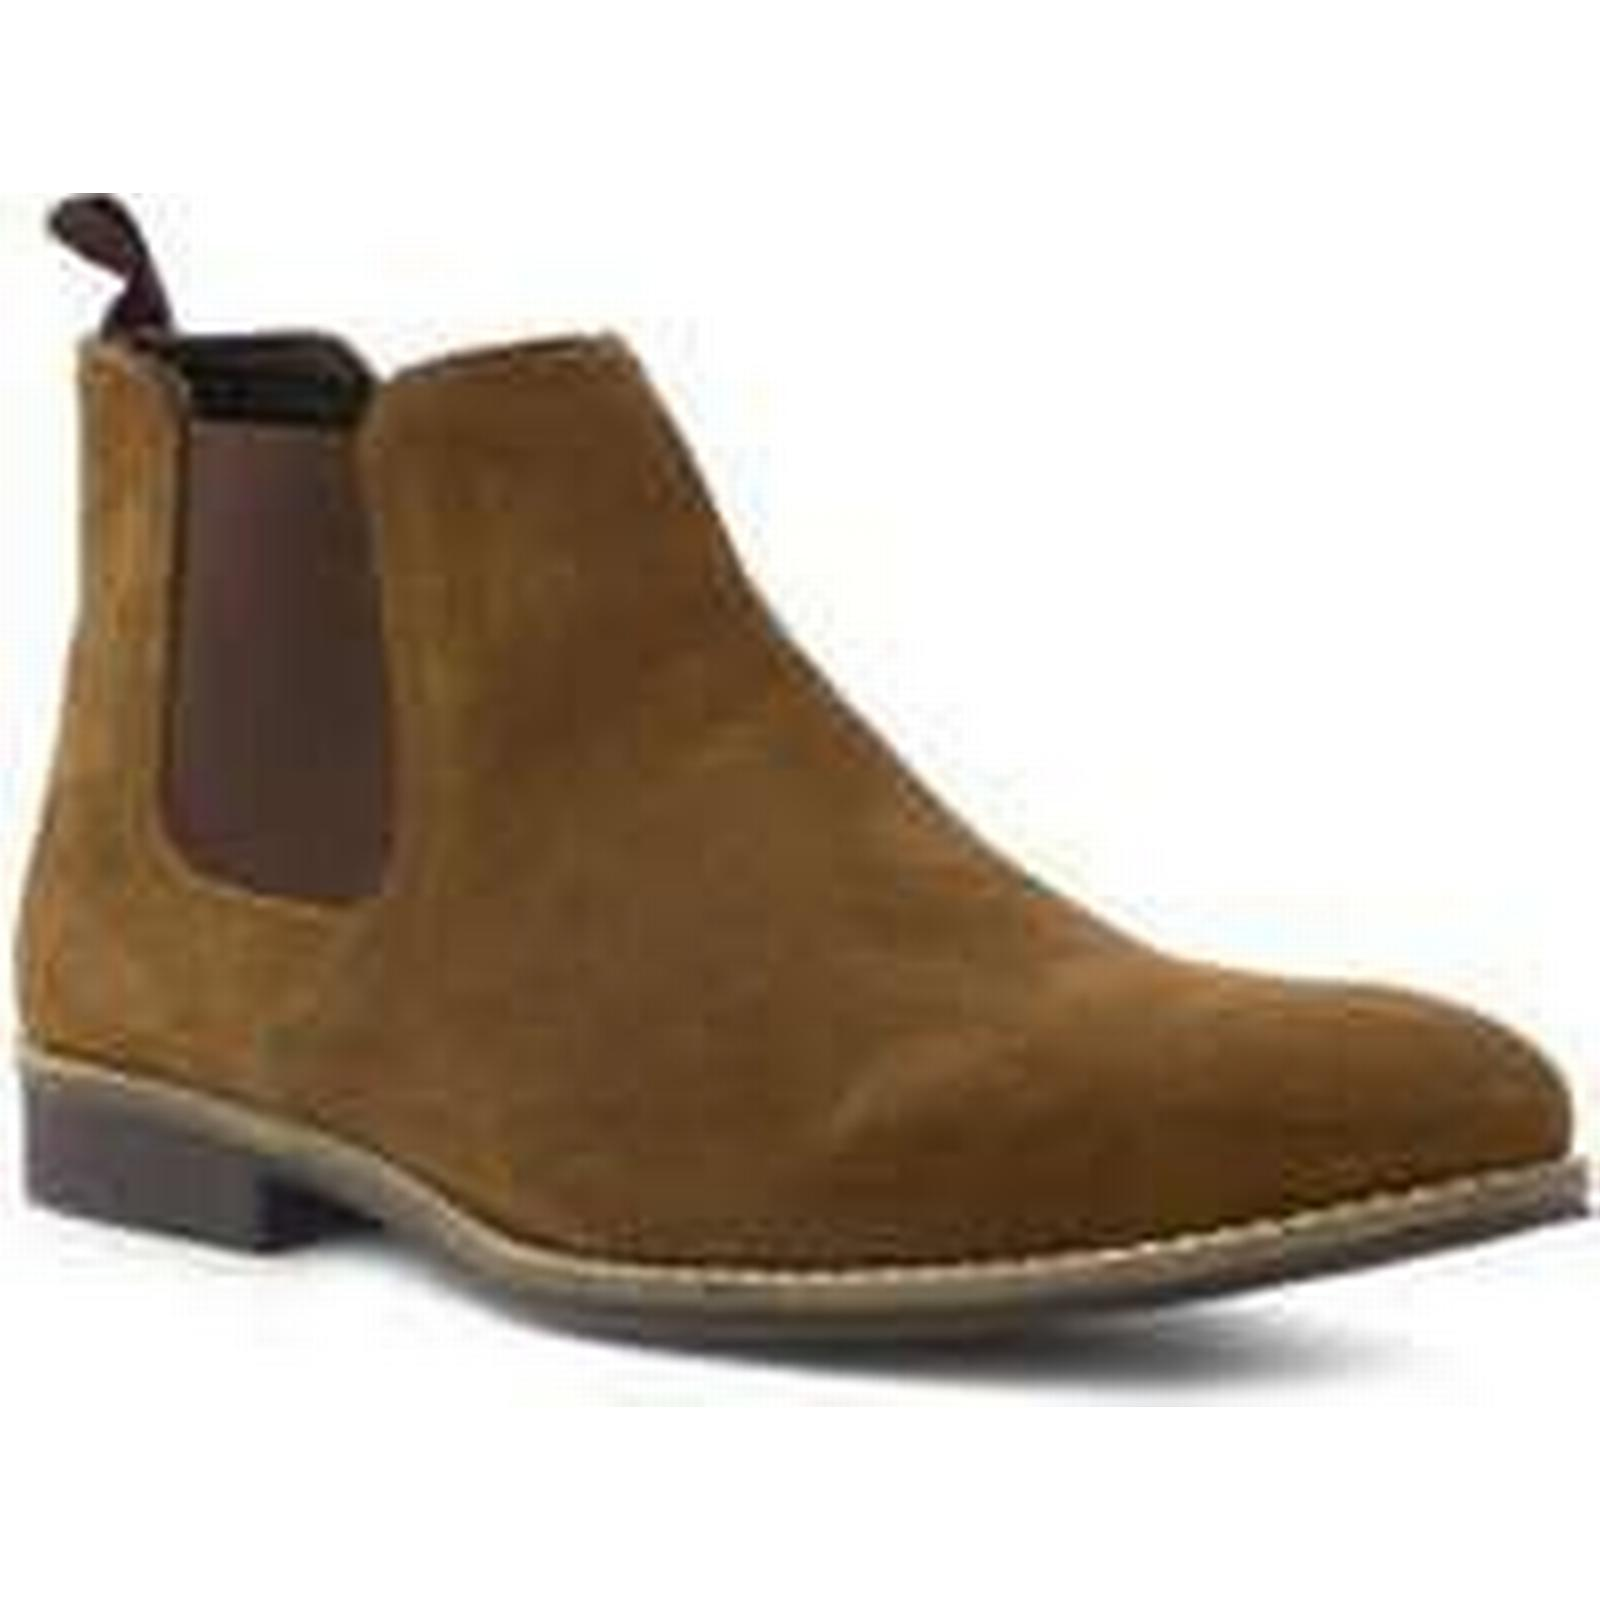 Red Tape Tan Mens Tan Tape Suede Chelsea Boot fd3f7f